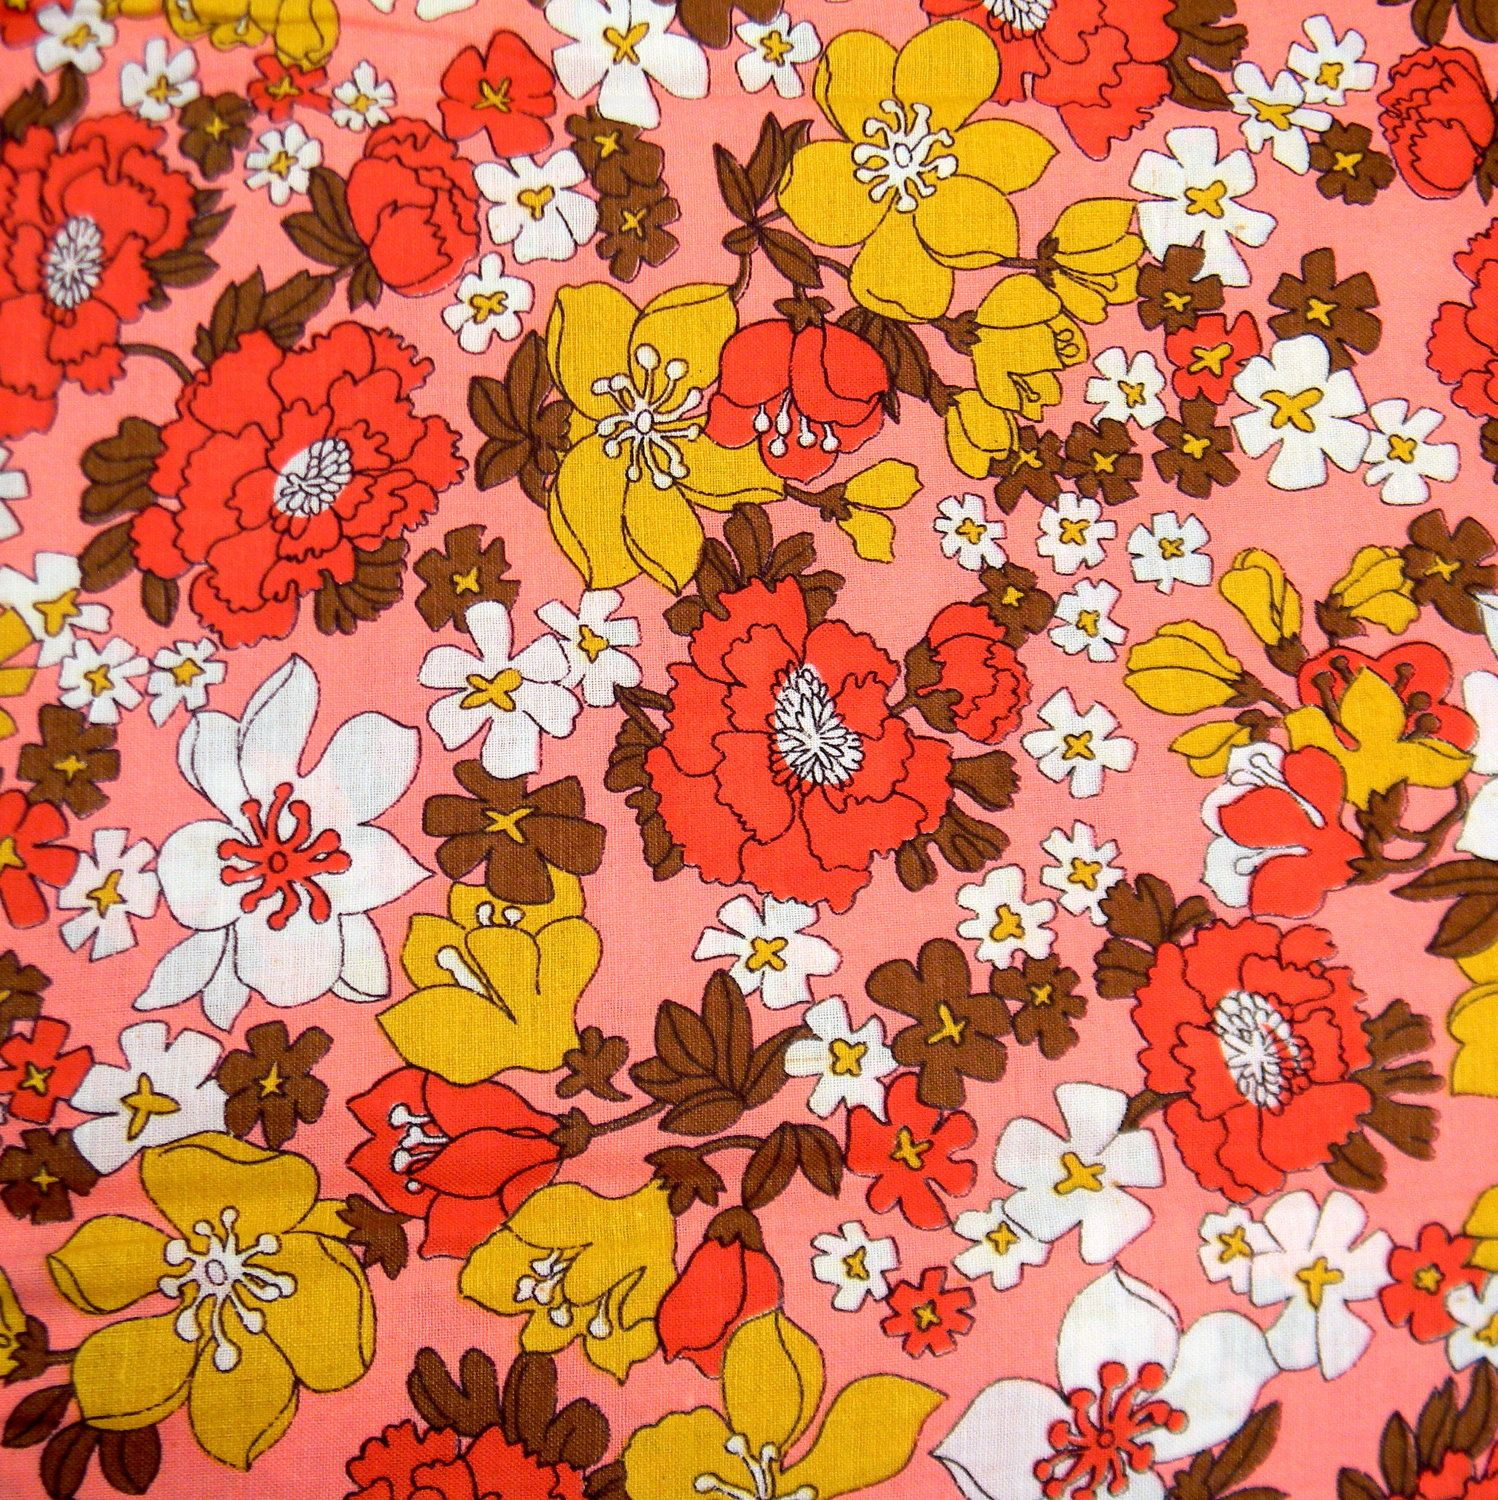 Pink Floral Fabric Vintage 1950s Lovely Springtime Retro